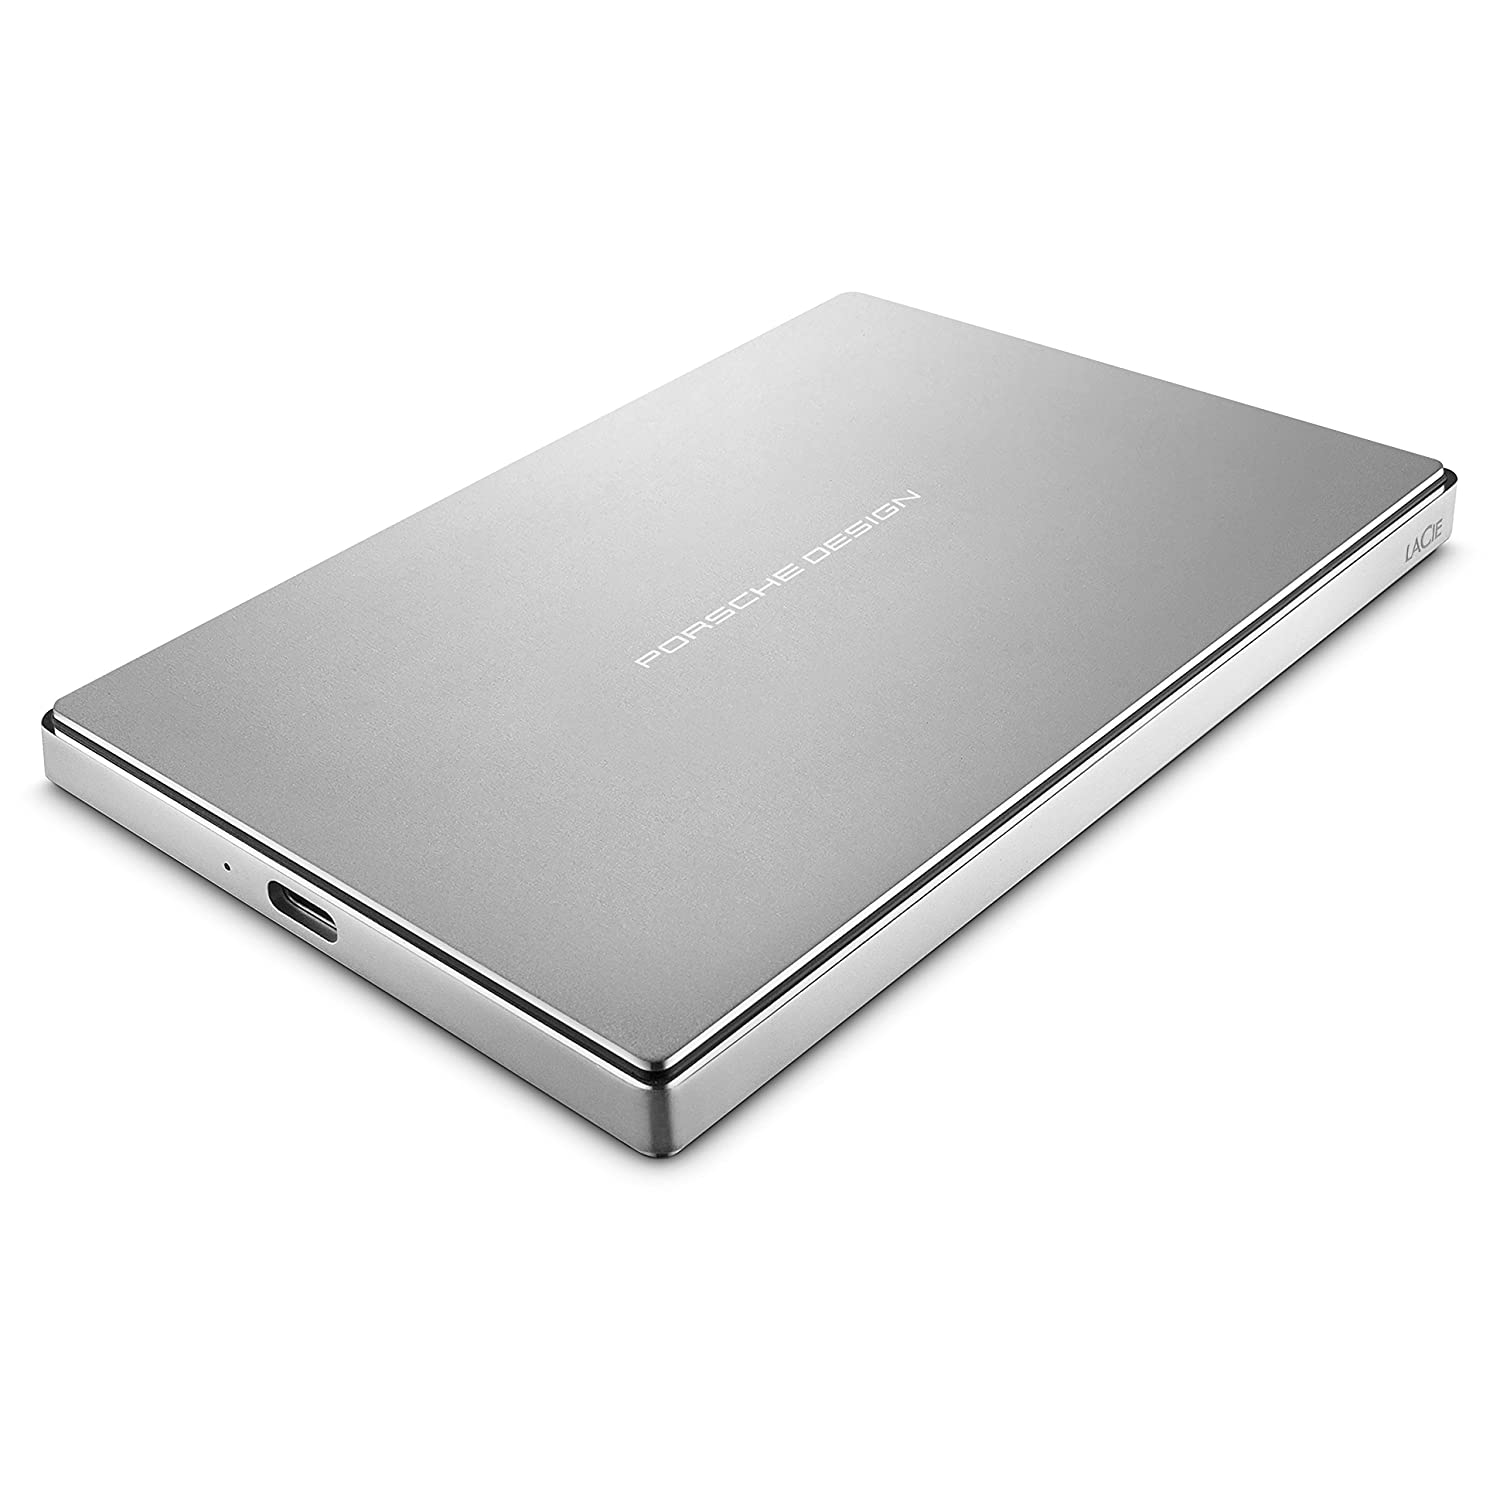 Top 10 Best External Hard Drives for Photographers & Videographers (2019 Reviews) 2